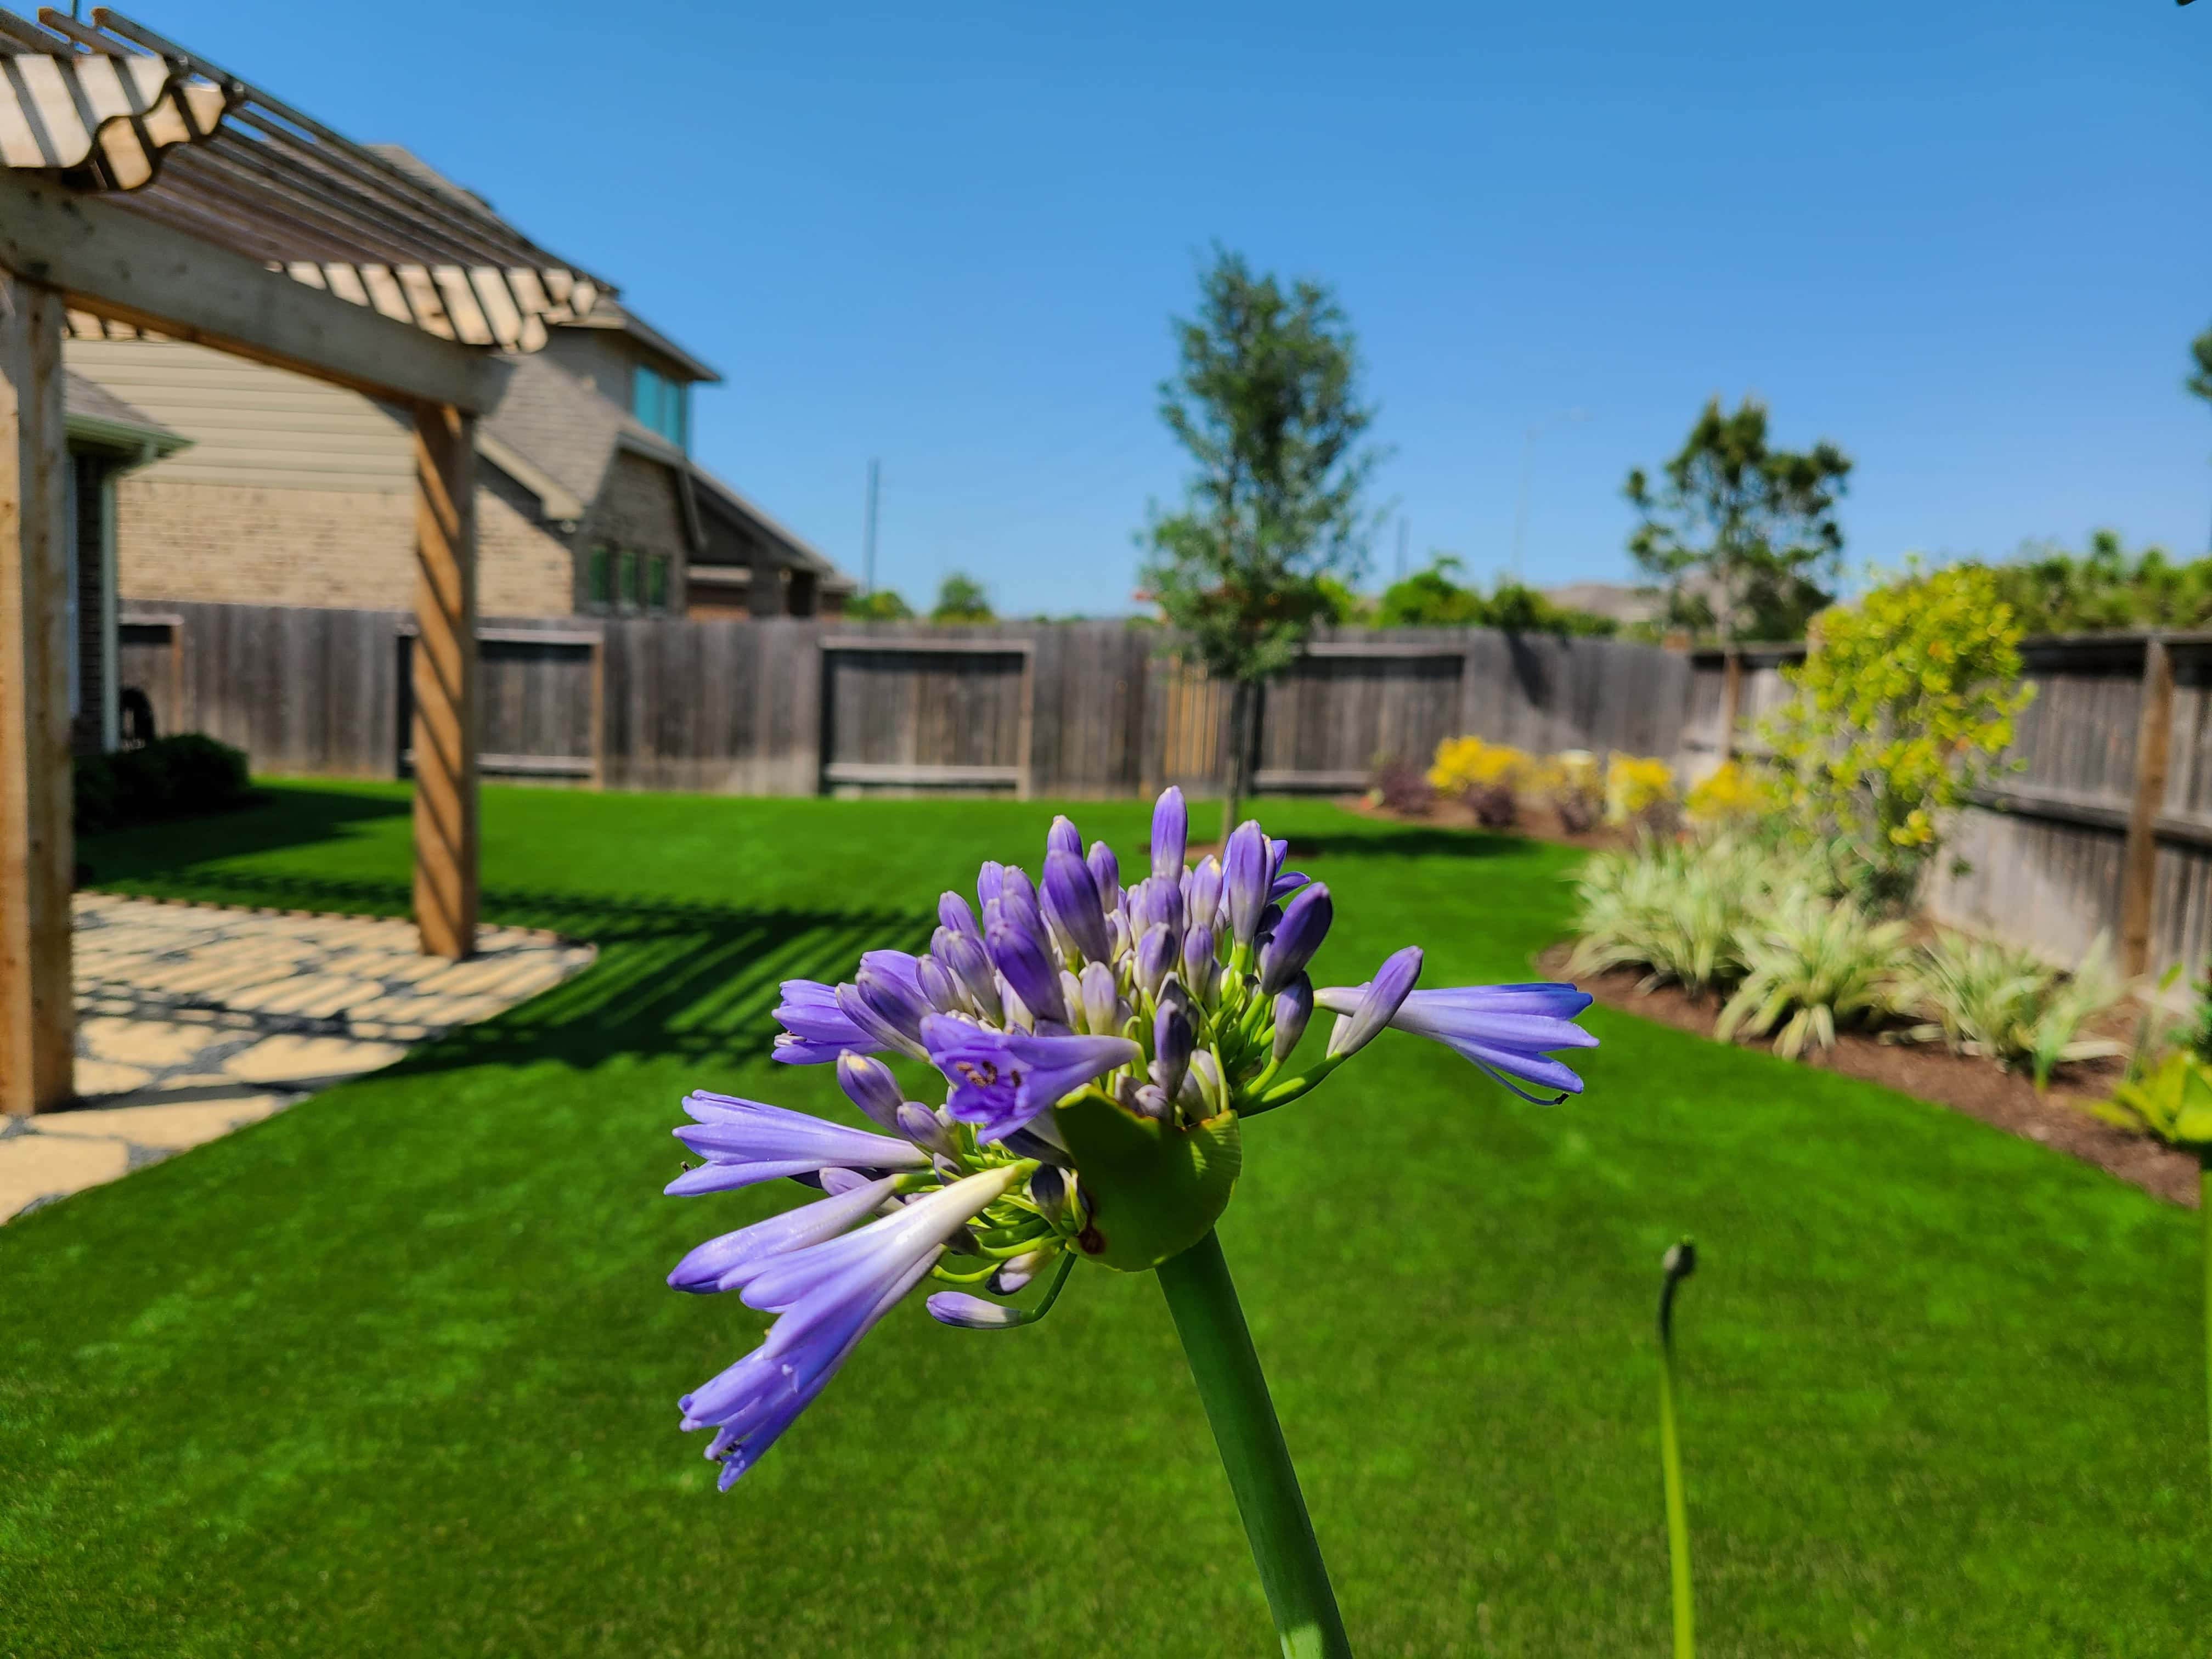 helms-landscape-synthetic-turf11